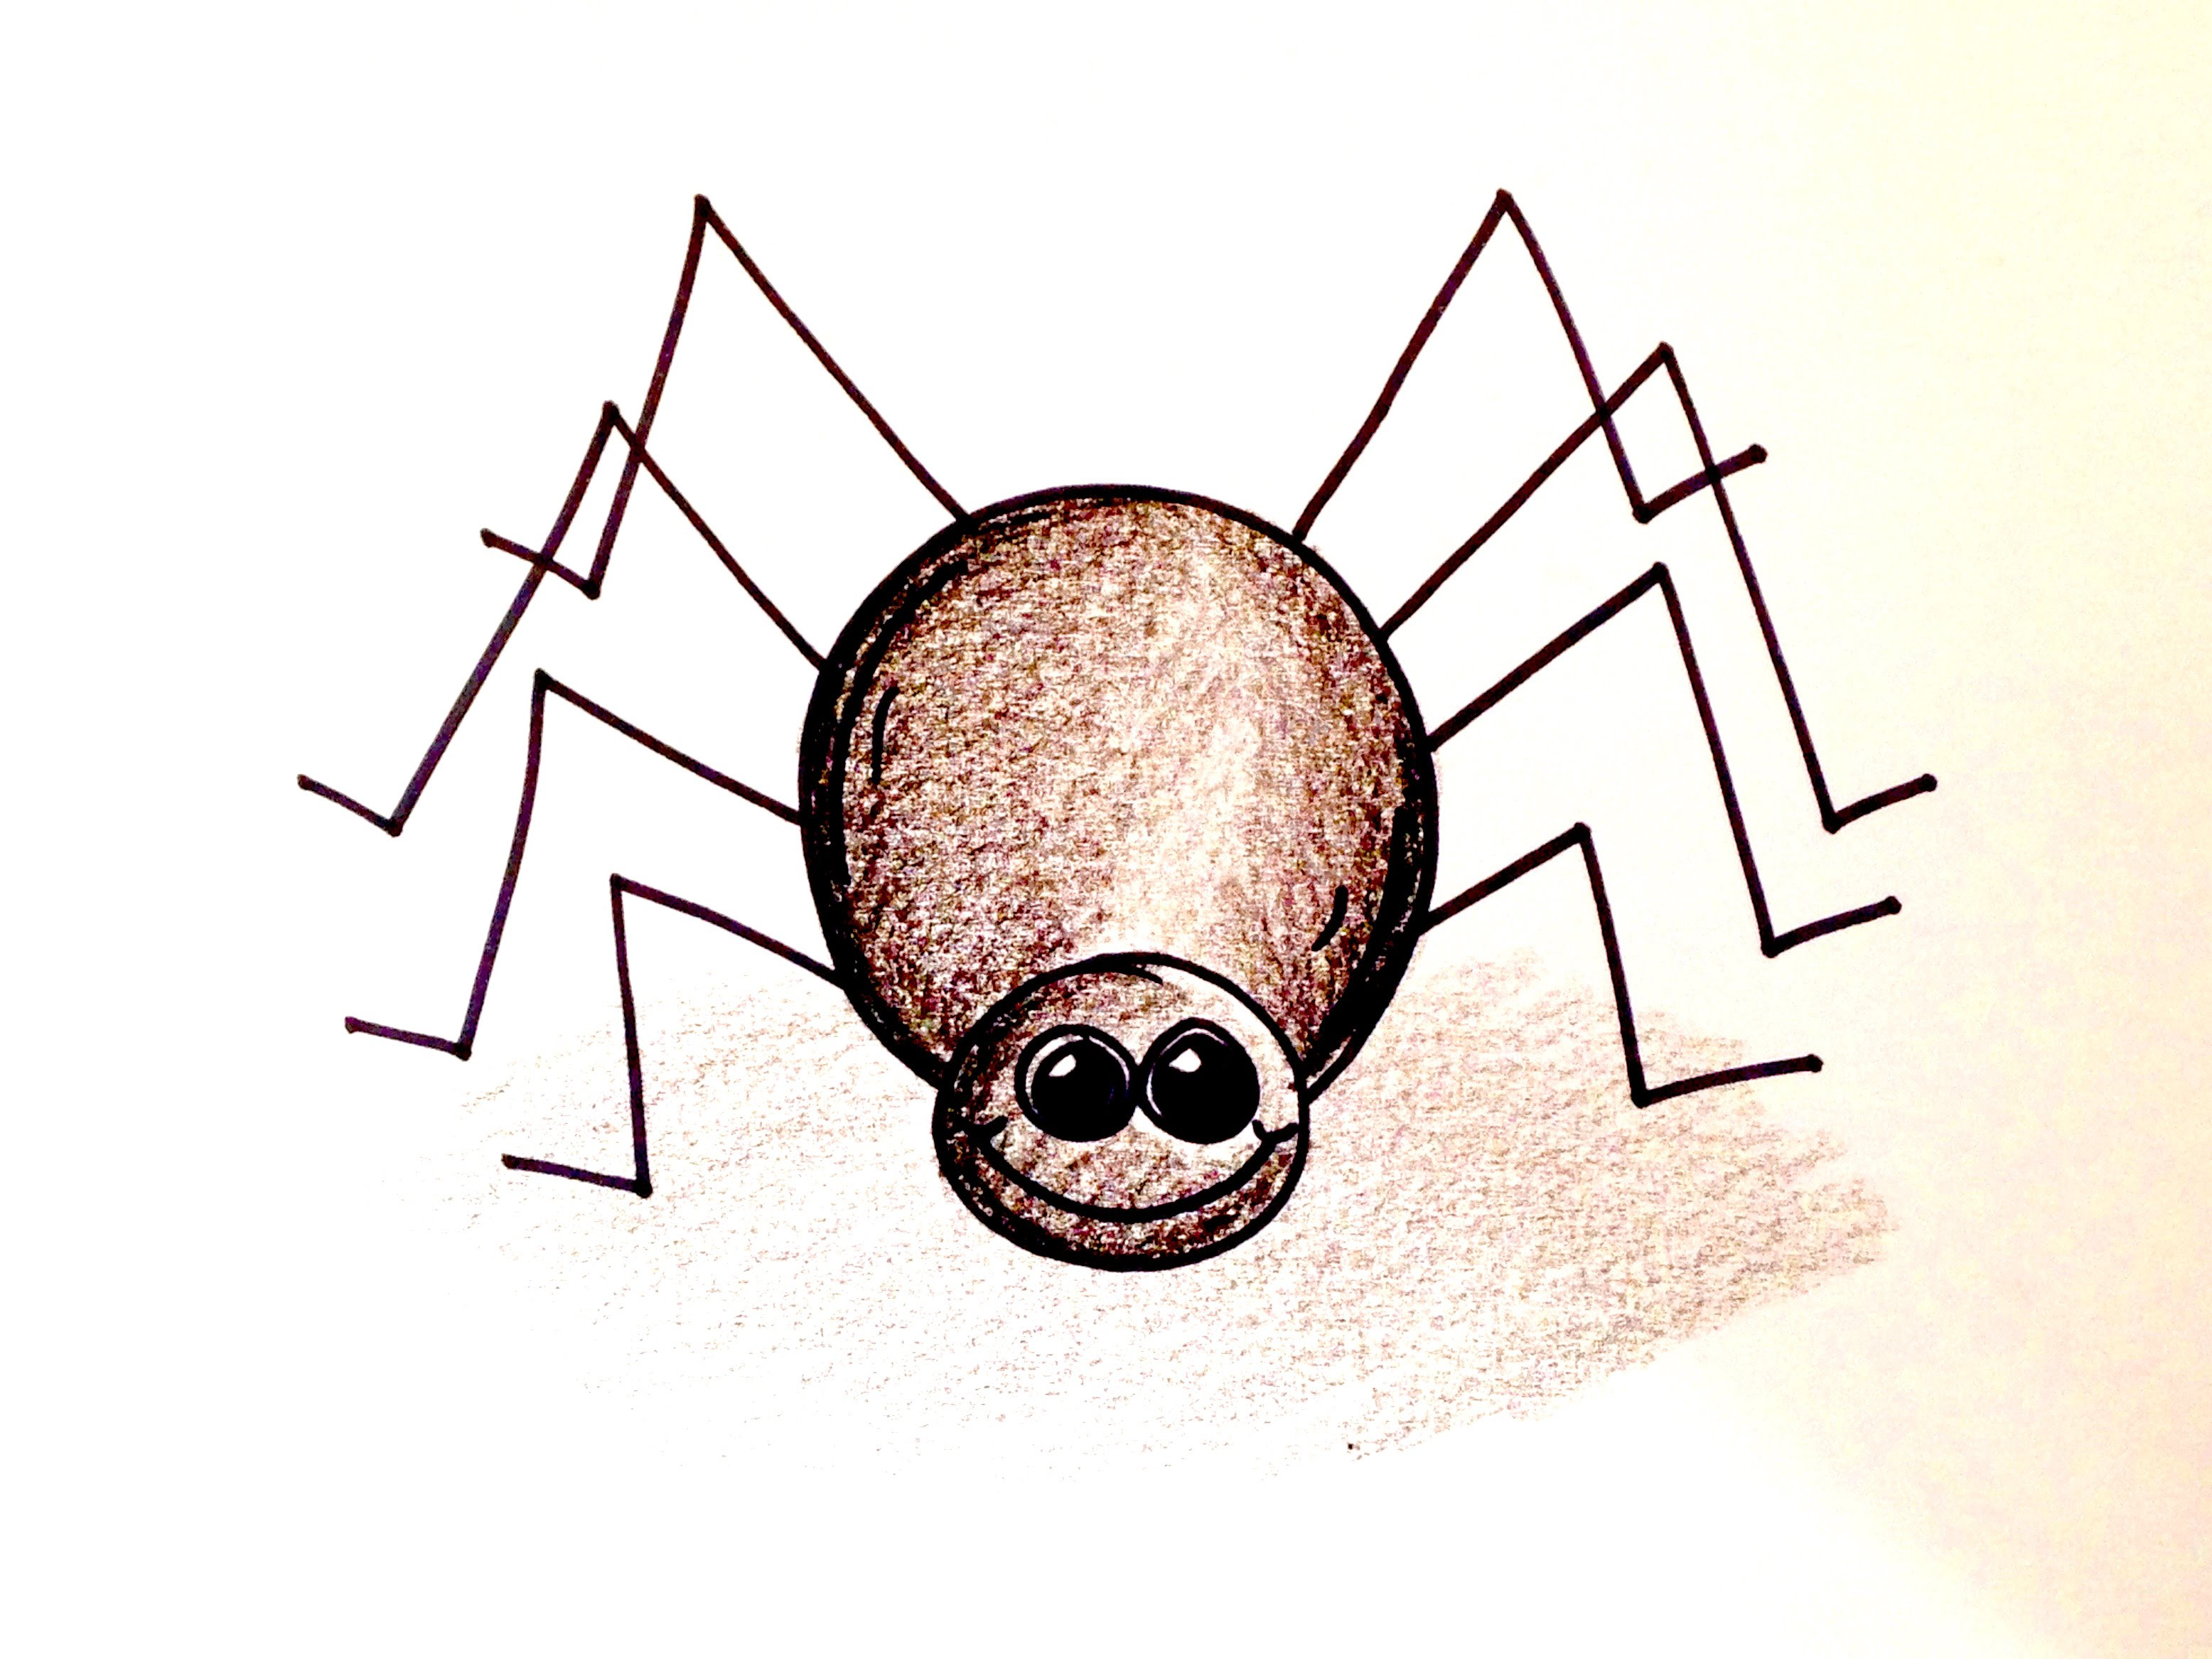 3112x2334 Drawing Lesson How To Draw A Halloween Spider